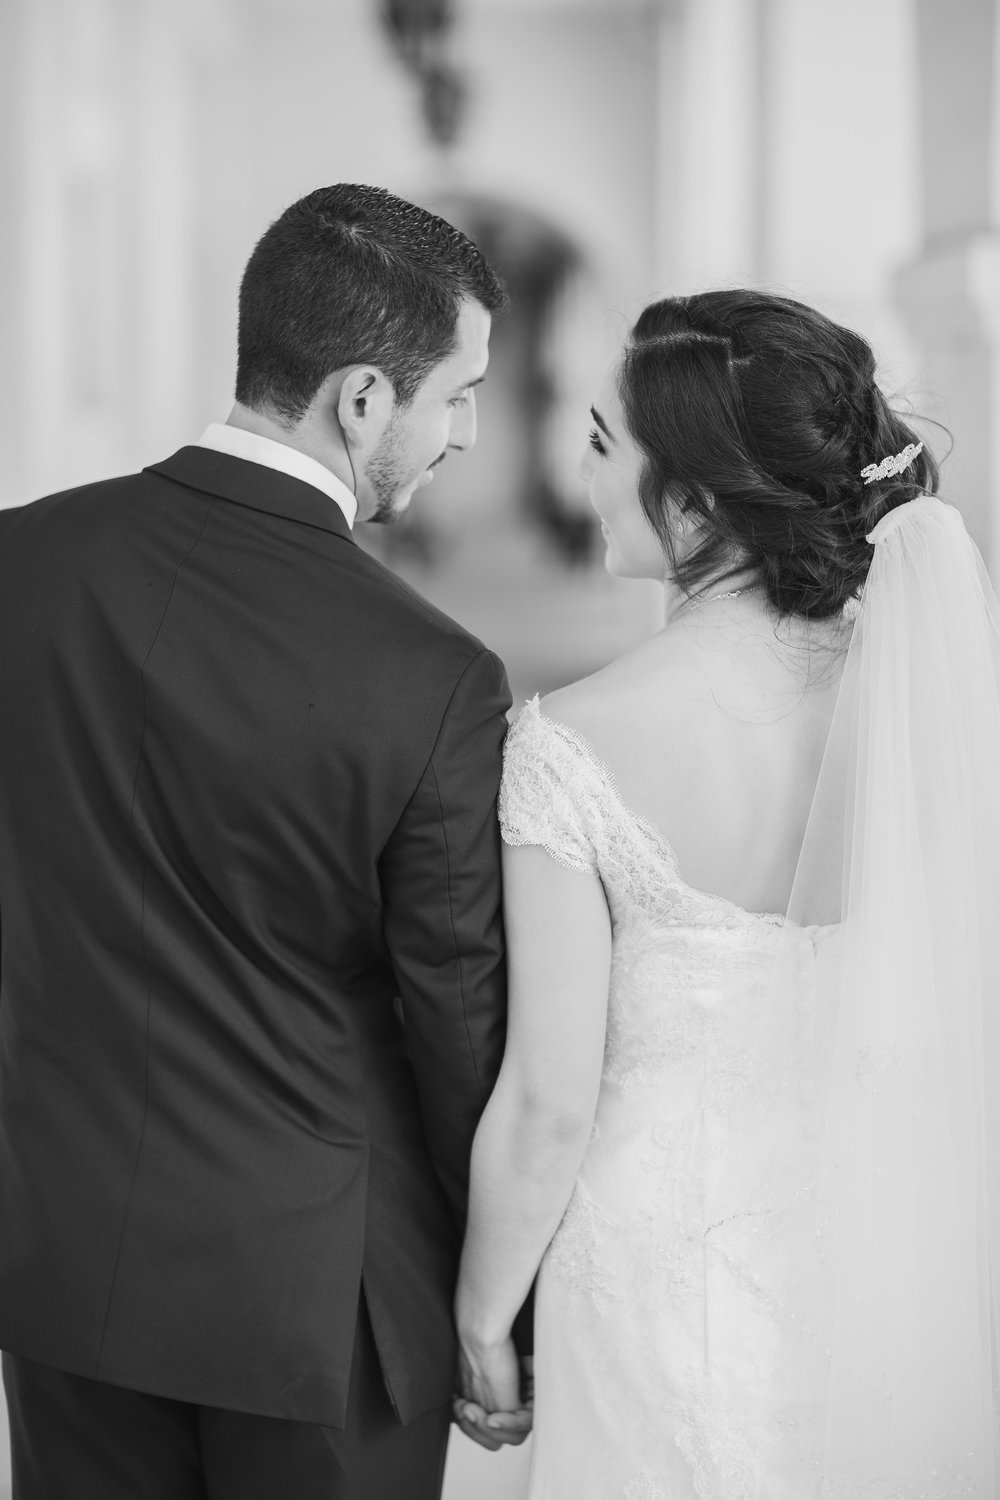 ! Bride and Groom Looking at each other Lovingly in BW photo.jpg